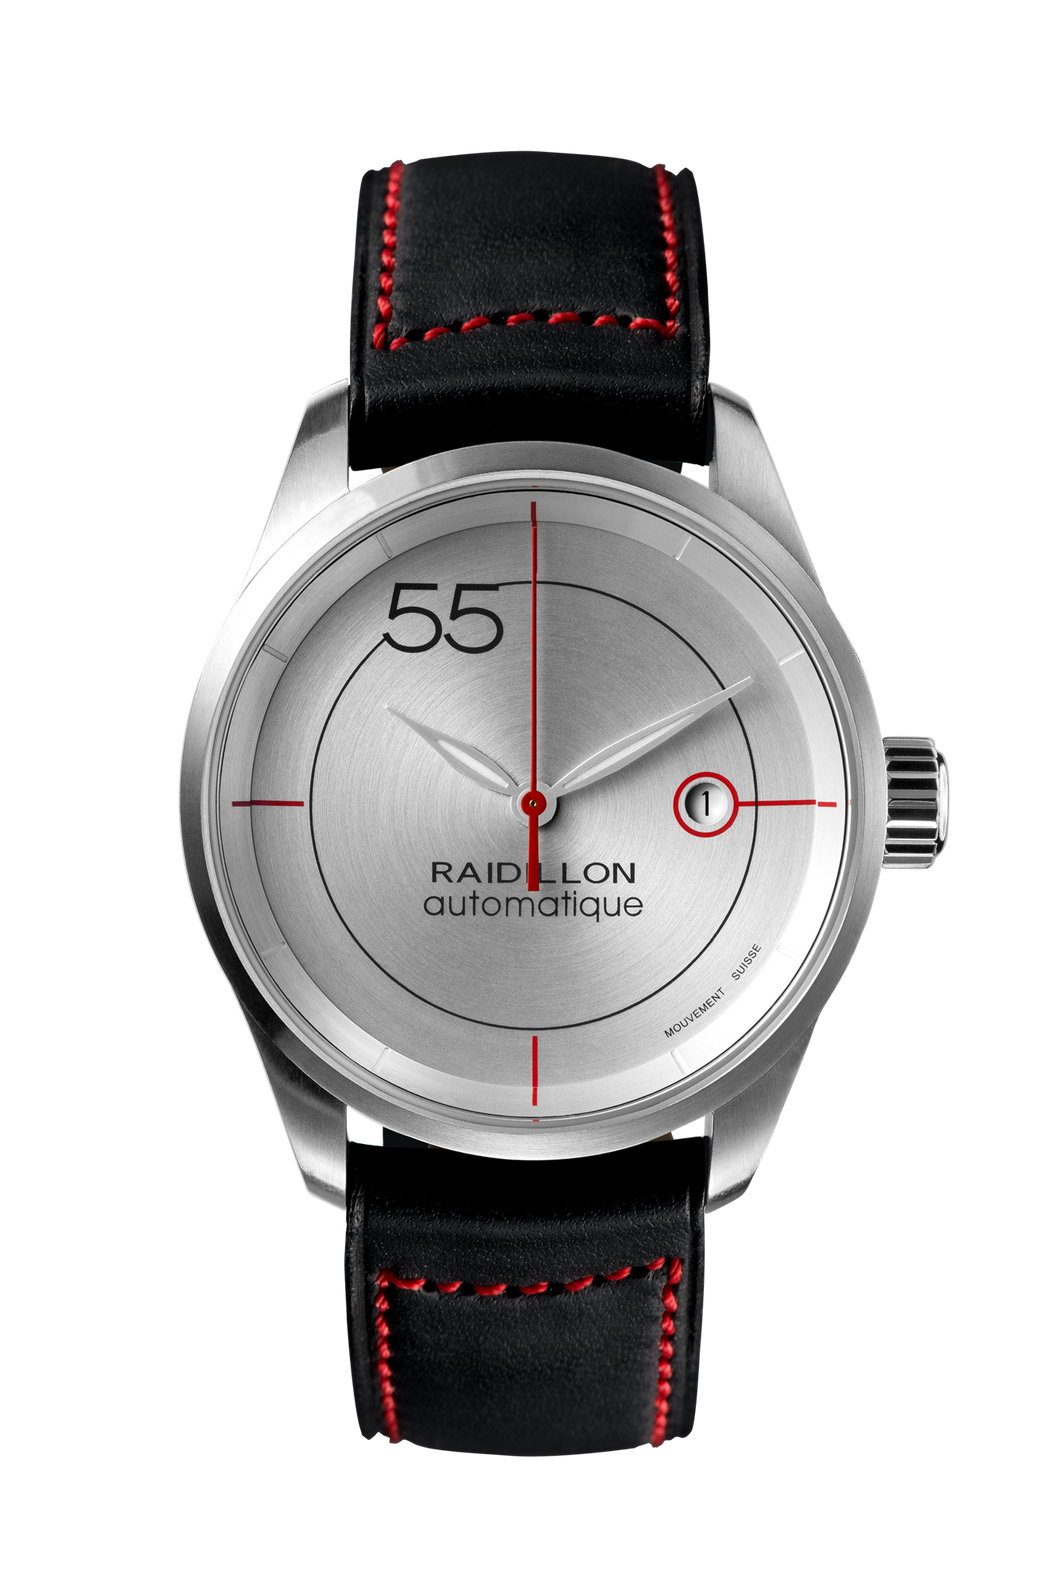 Raidillon, 55, concept, watch, timepiece, Swiss made, Valjoux, design, Belgium, limited édition, lifestyle, cars, car racing, Spa-Francorchamps, gentleman driver, montre, Belgique, série limitée, voitures, course automobile